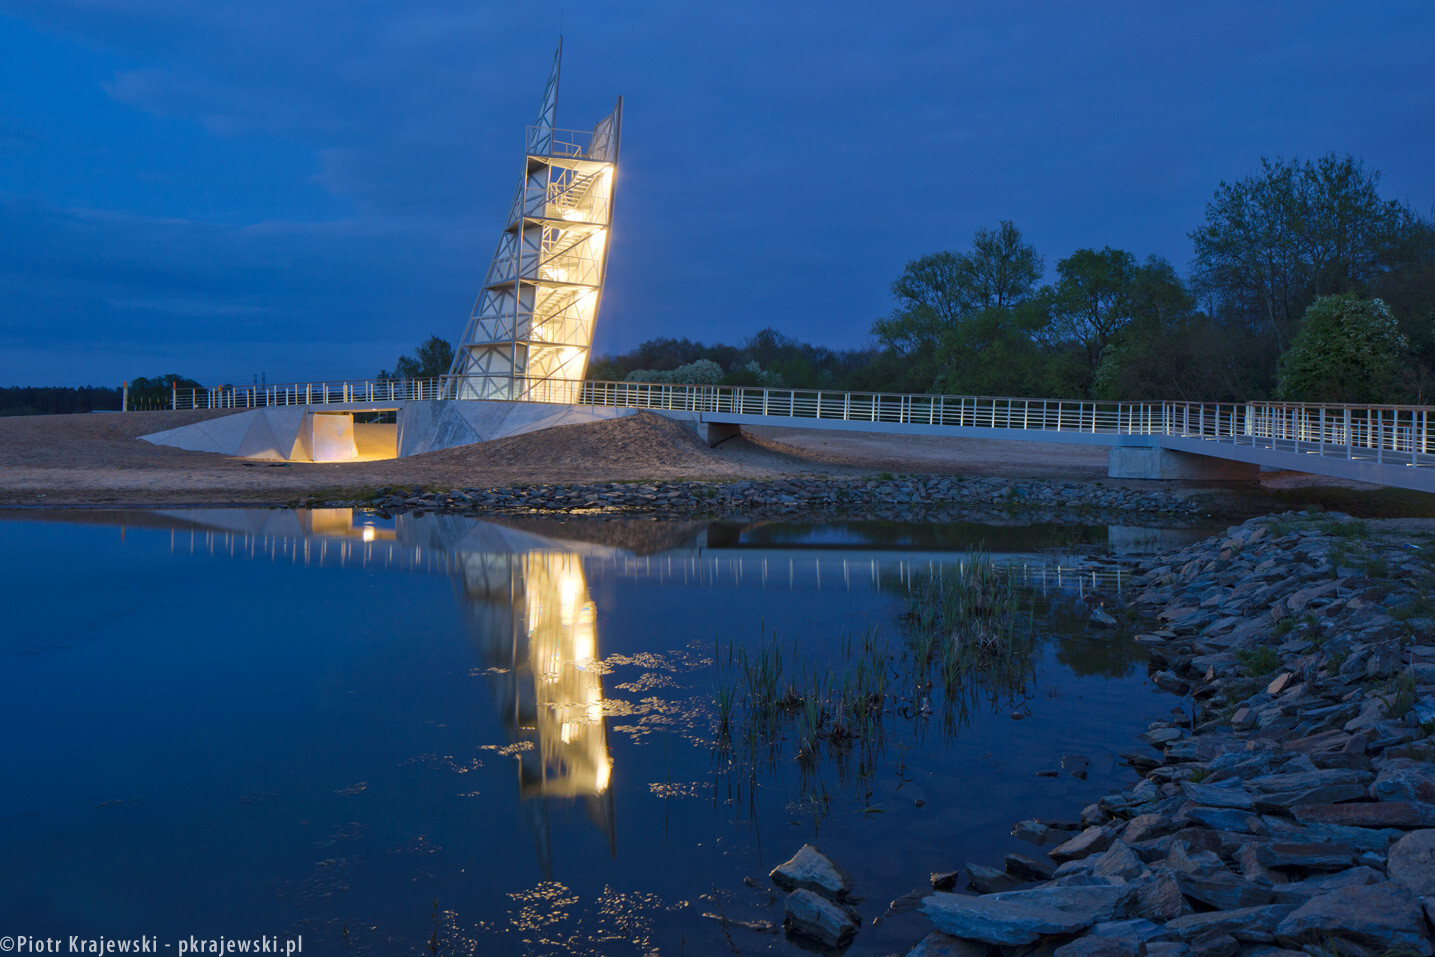 Observation Tower at Bardowskiego lagoon in Warsaw